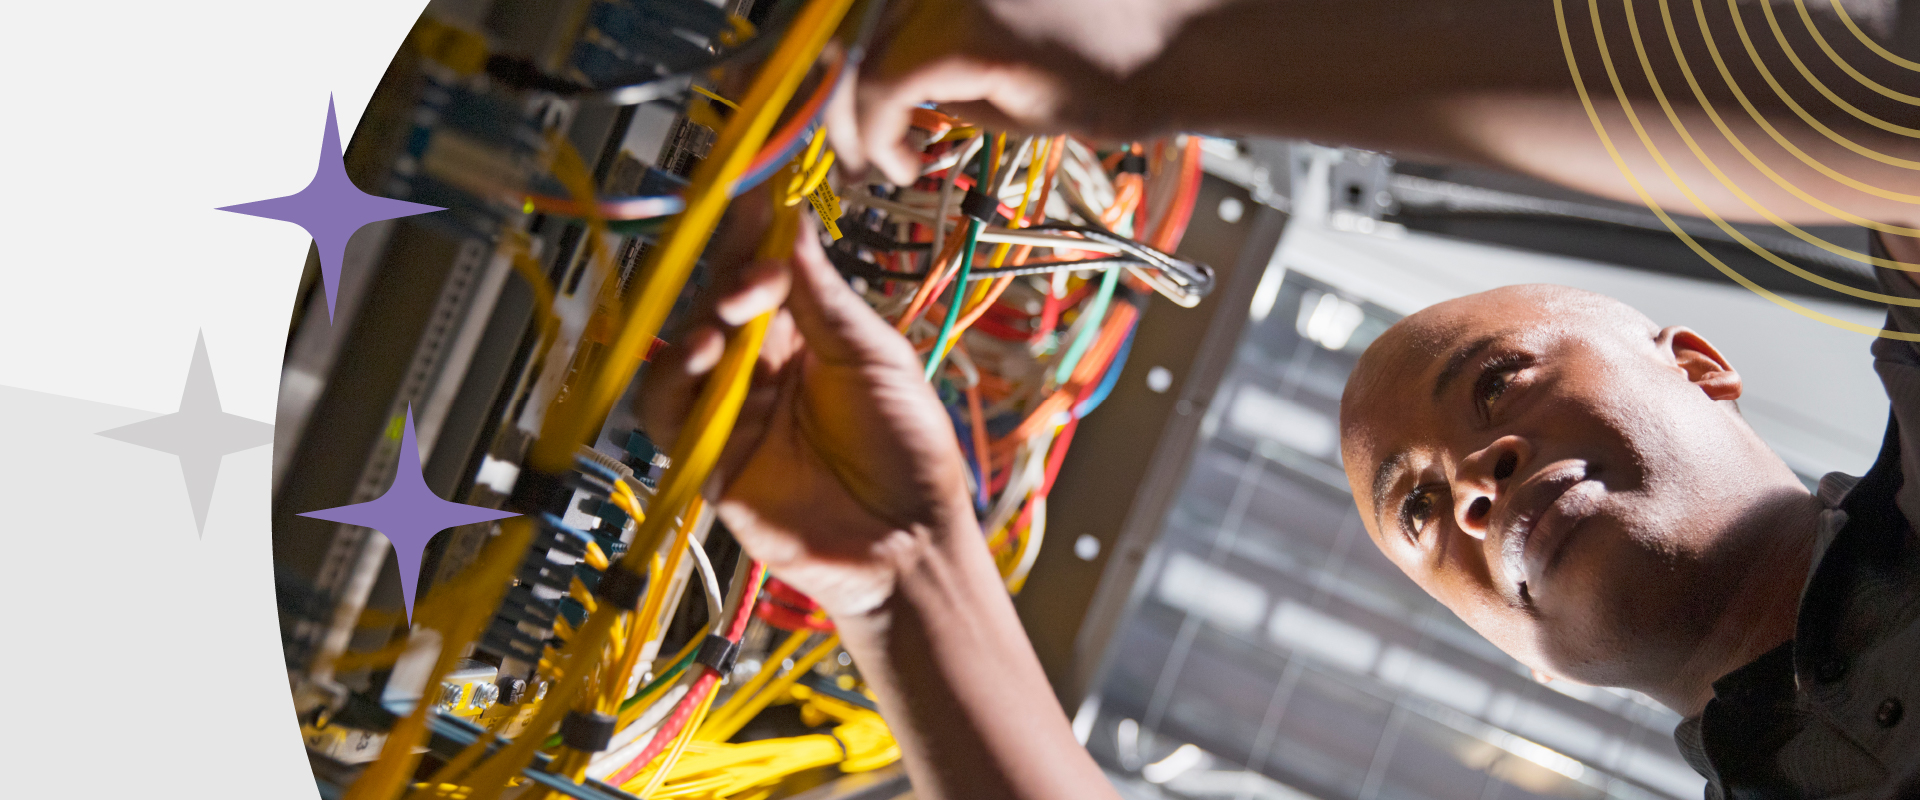 Managed IT maintains your technology infrastructure